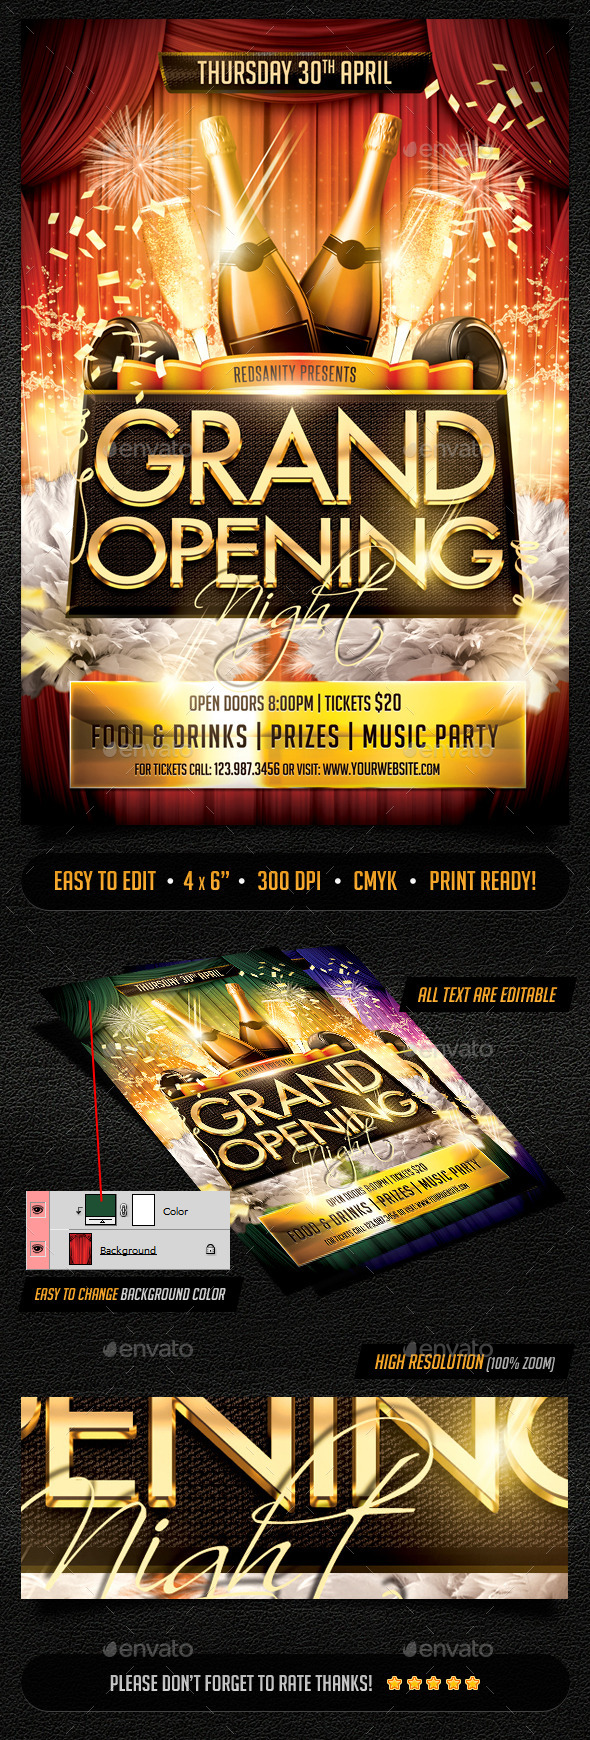 Grand Opening Night Flyer by Redsanity | GraphicRiver